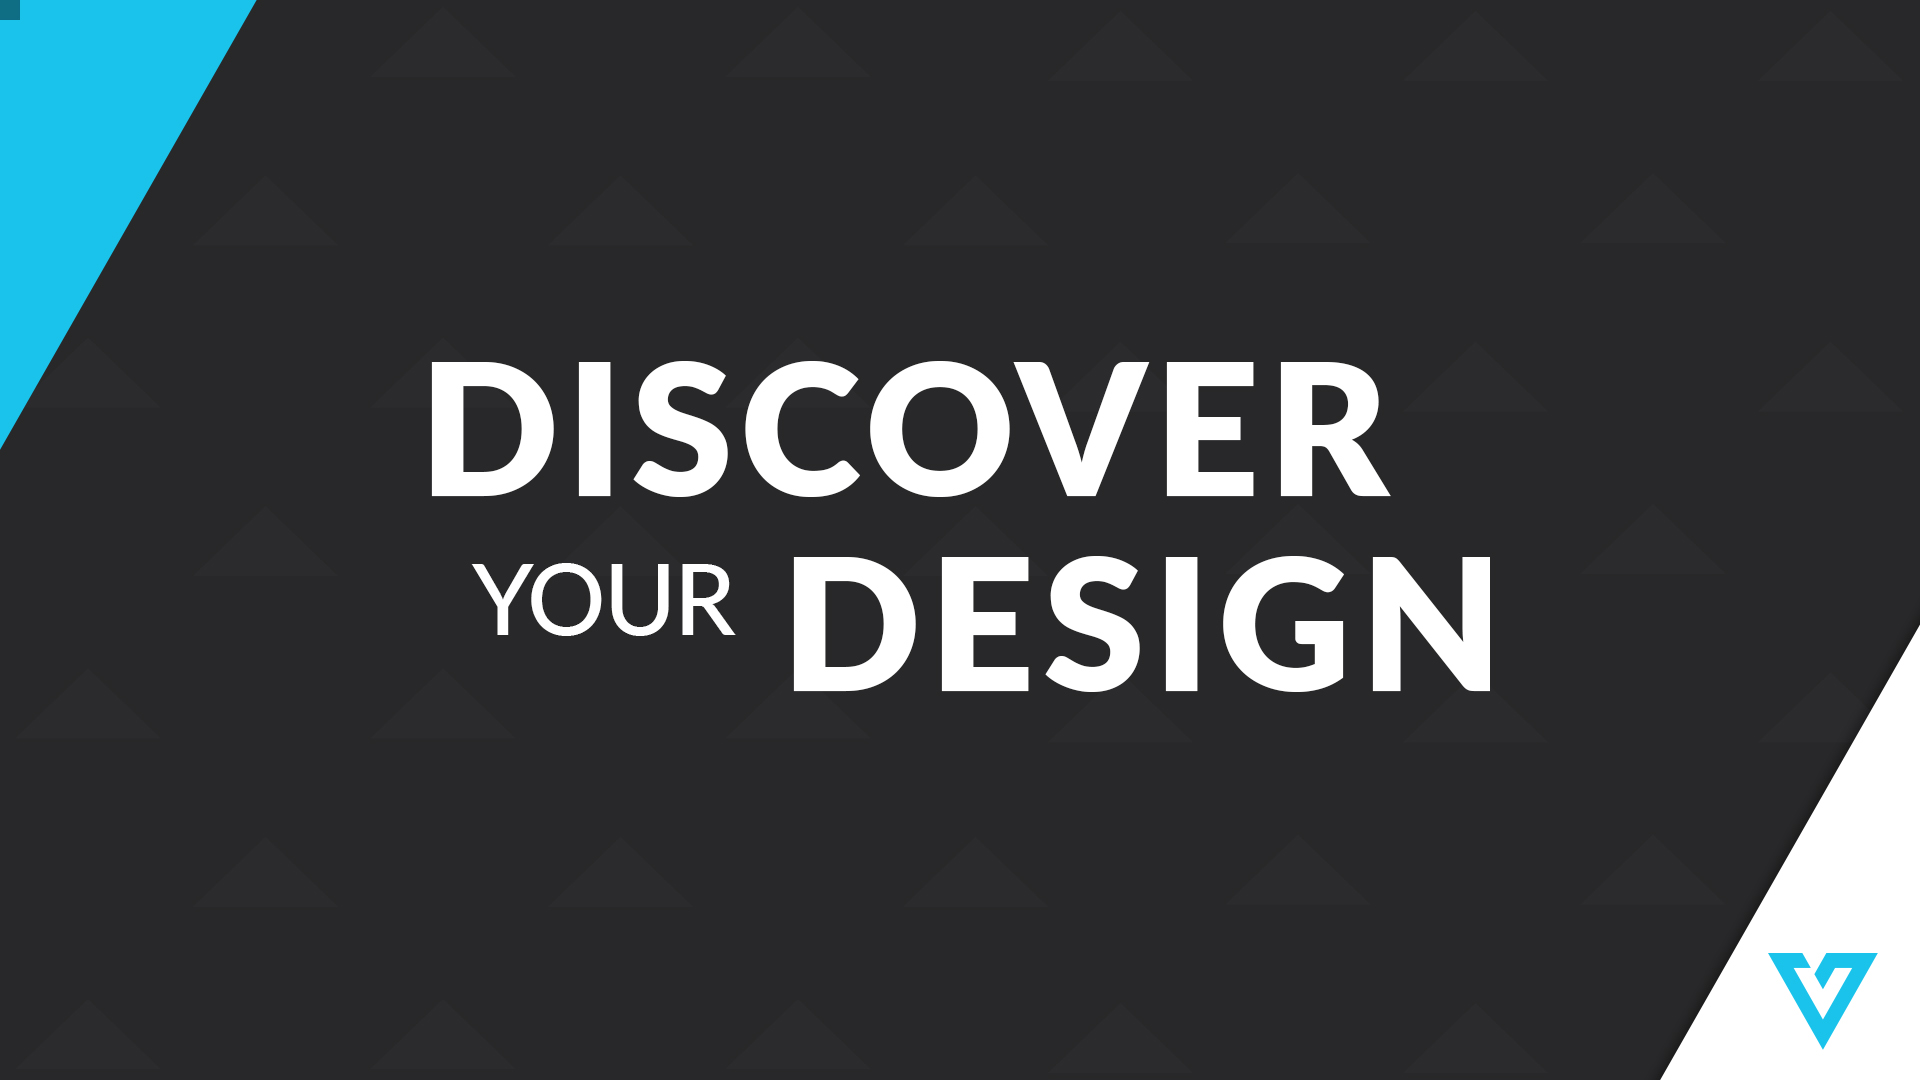 Link to Discover Your Design page at https://venture.cc/events/event-detail/rockevents/96/133/